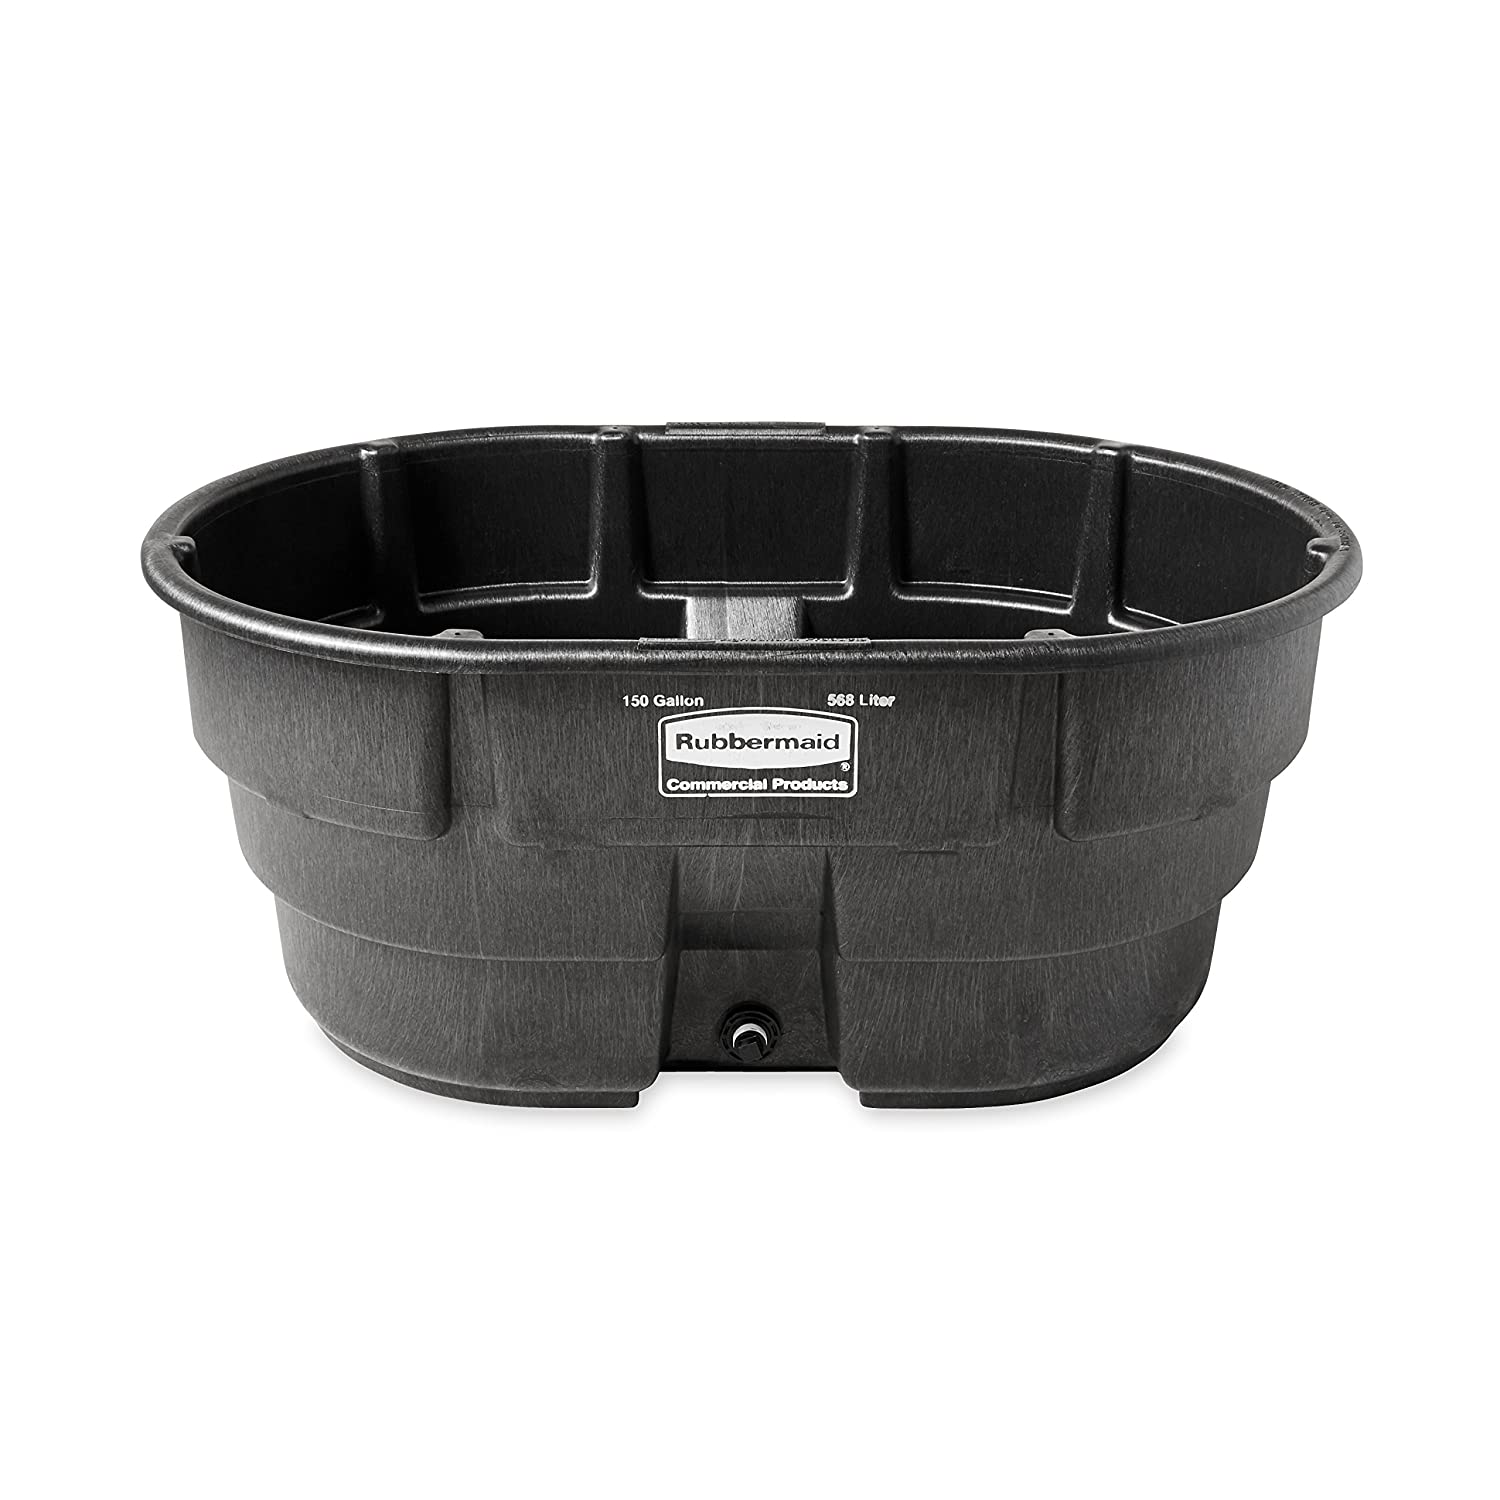 large tubs image medium tub rubbermaid empty